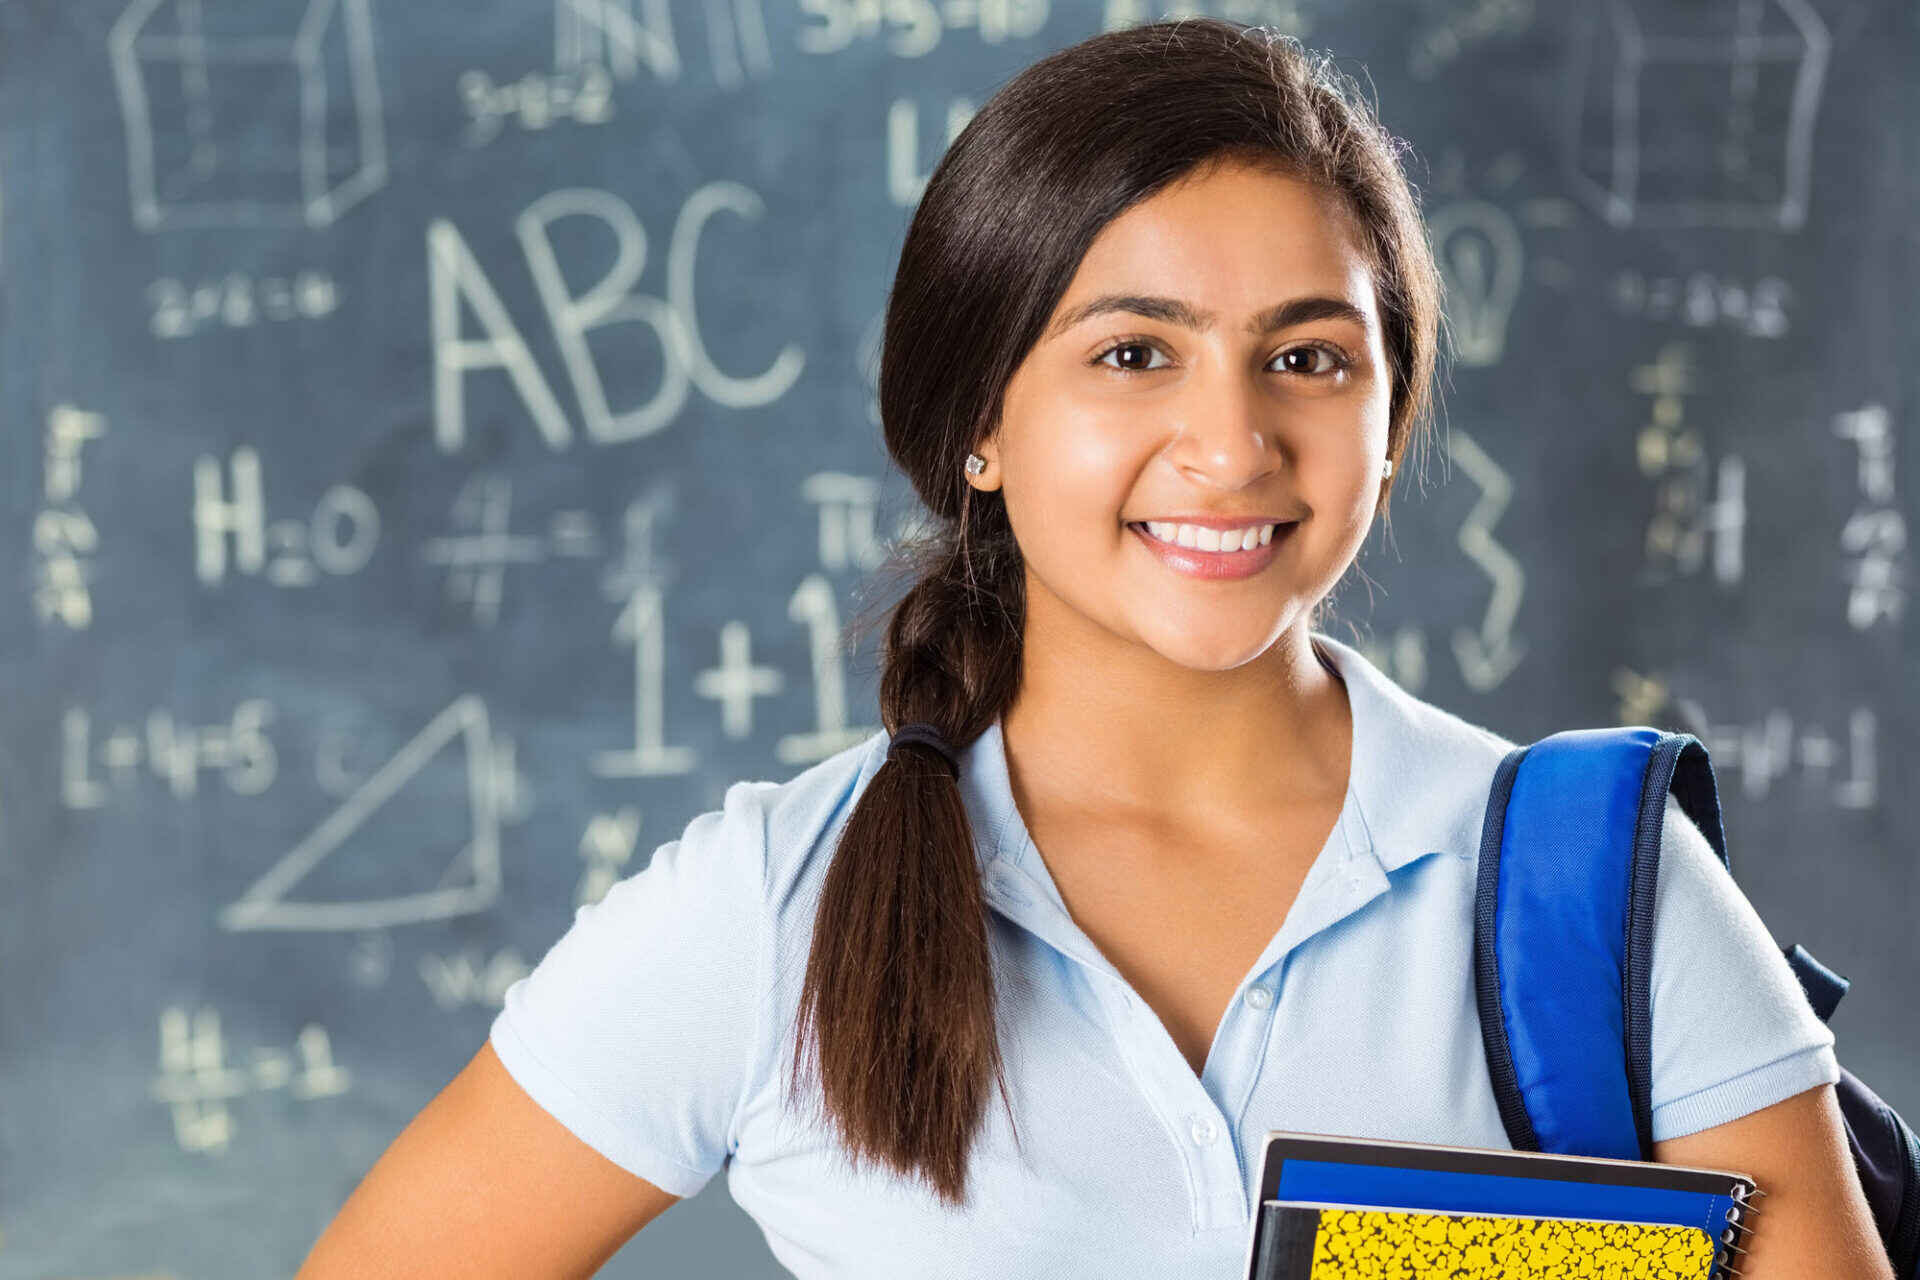 middle school girl smiling in front of a chalkboard